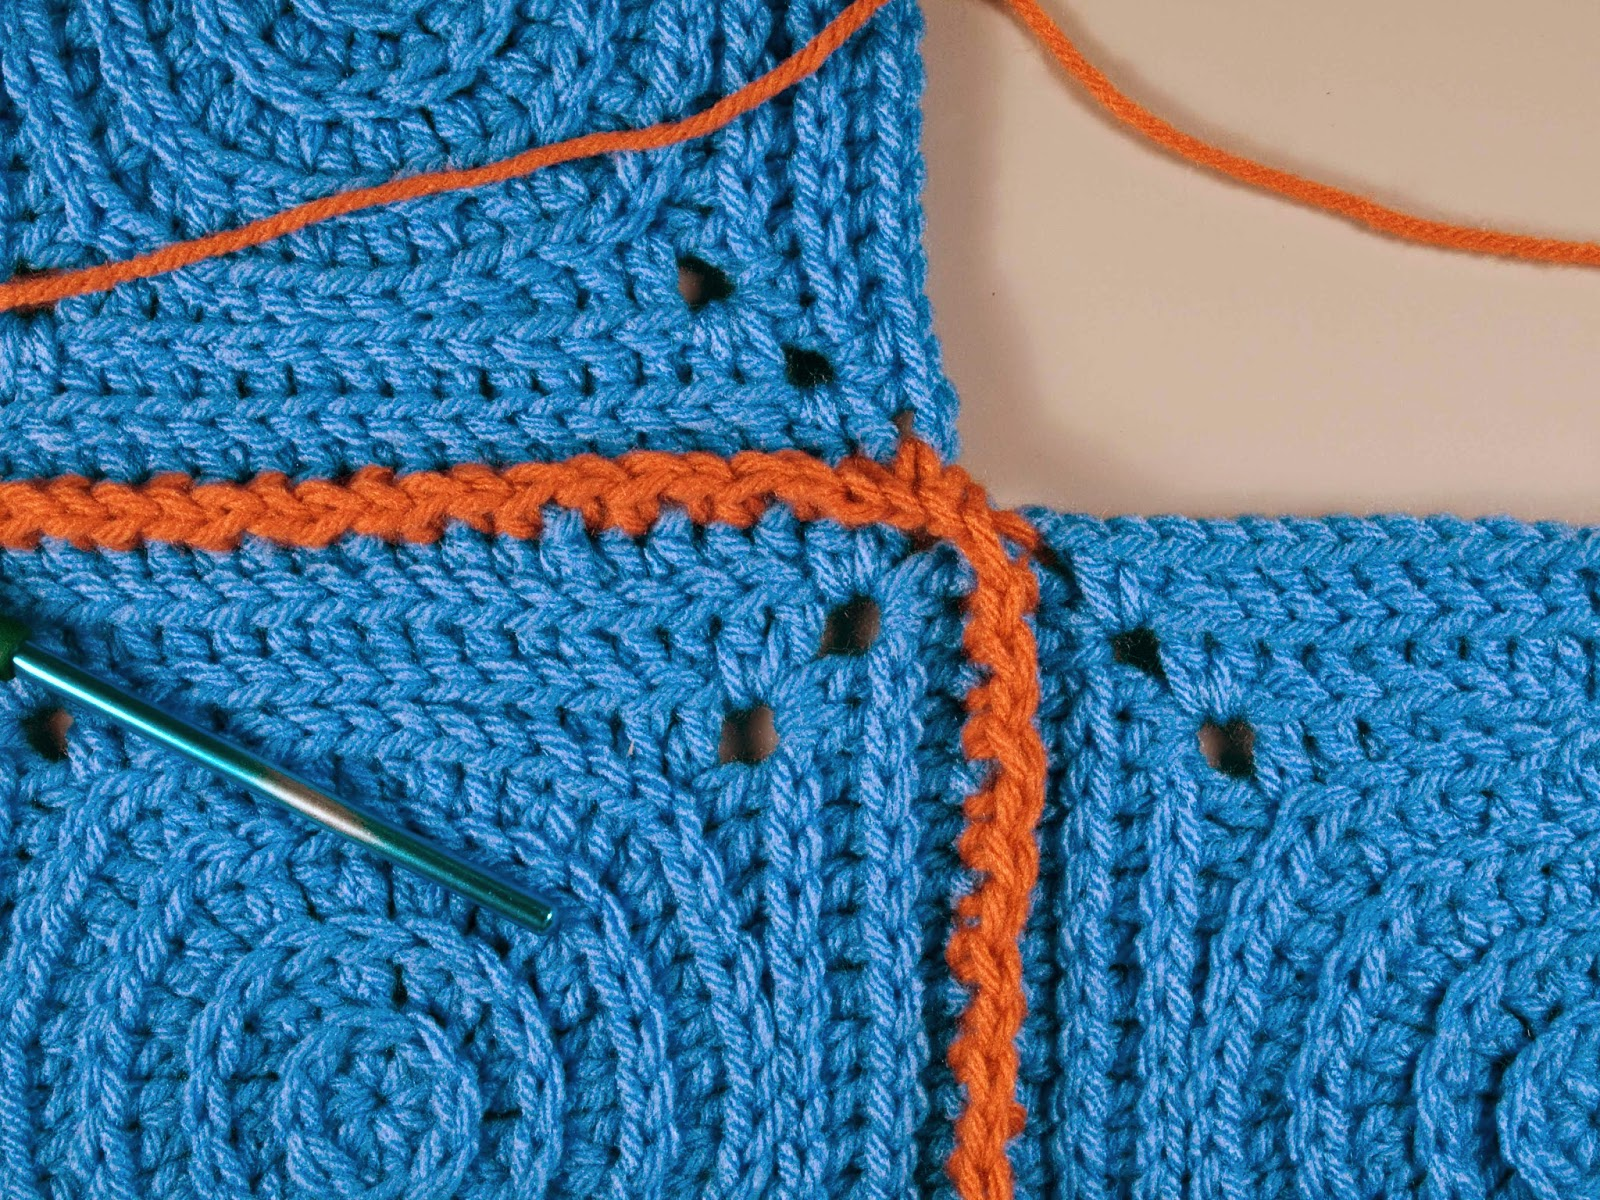 Crochet Stitches Joining : CrochetByKarin: The Single Crochet Joining Stitch